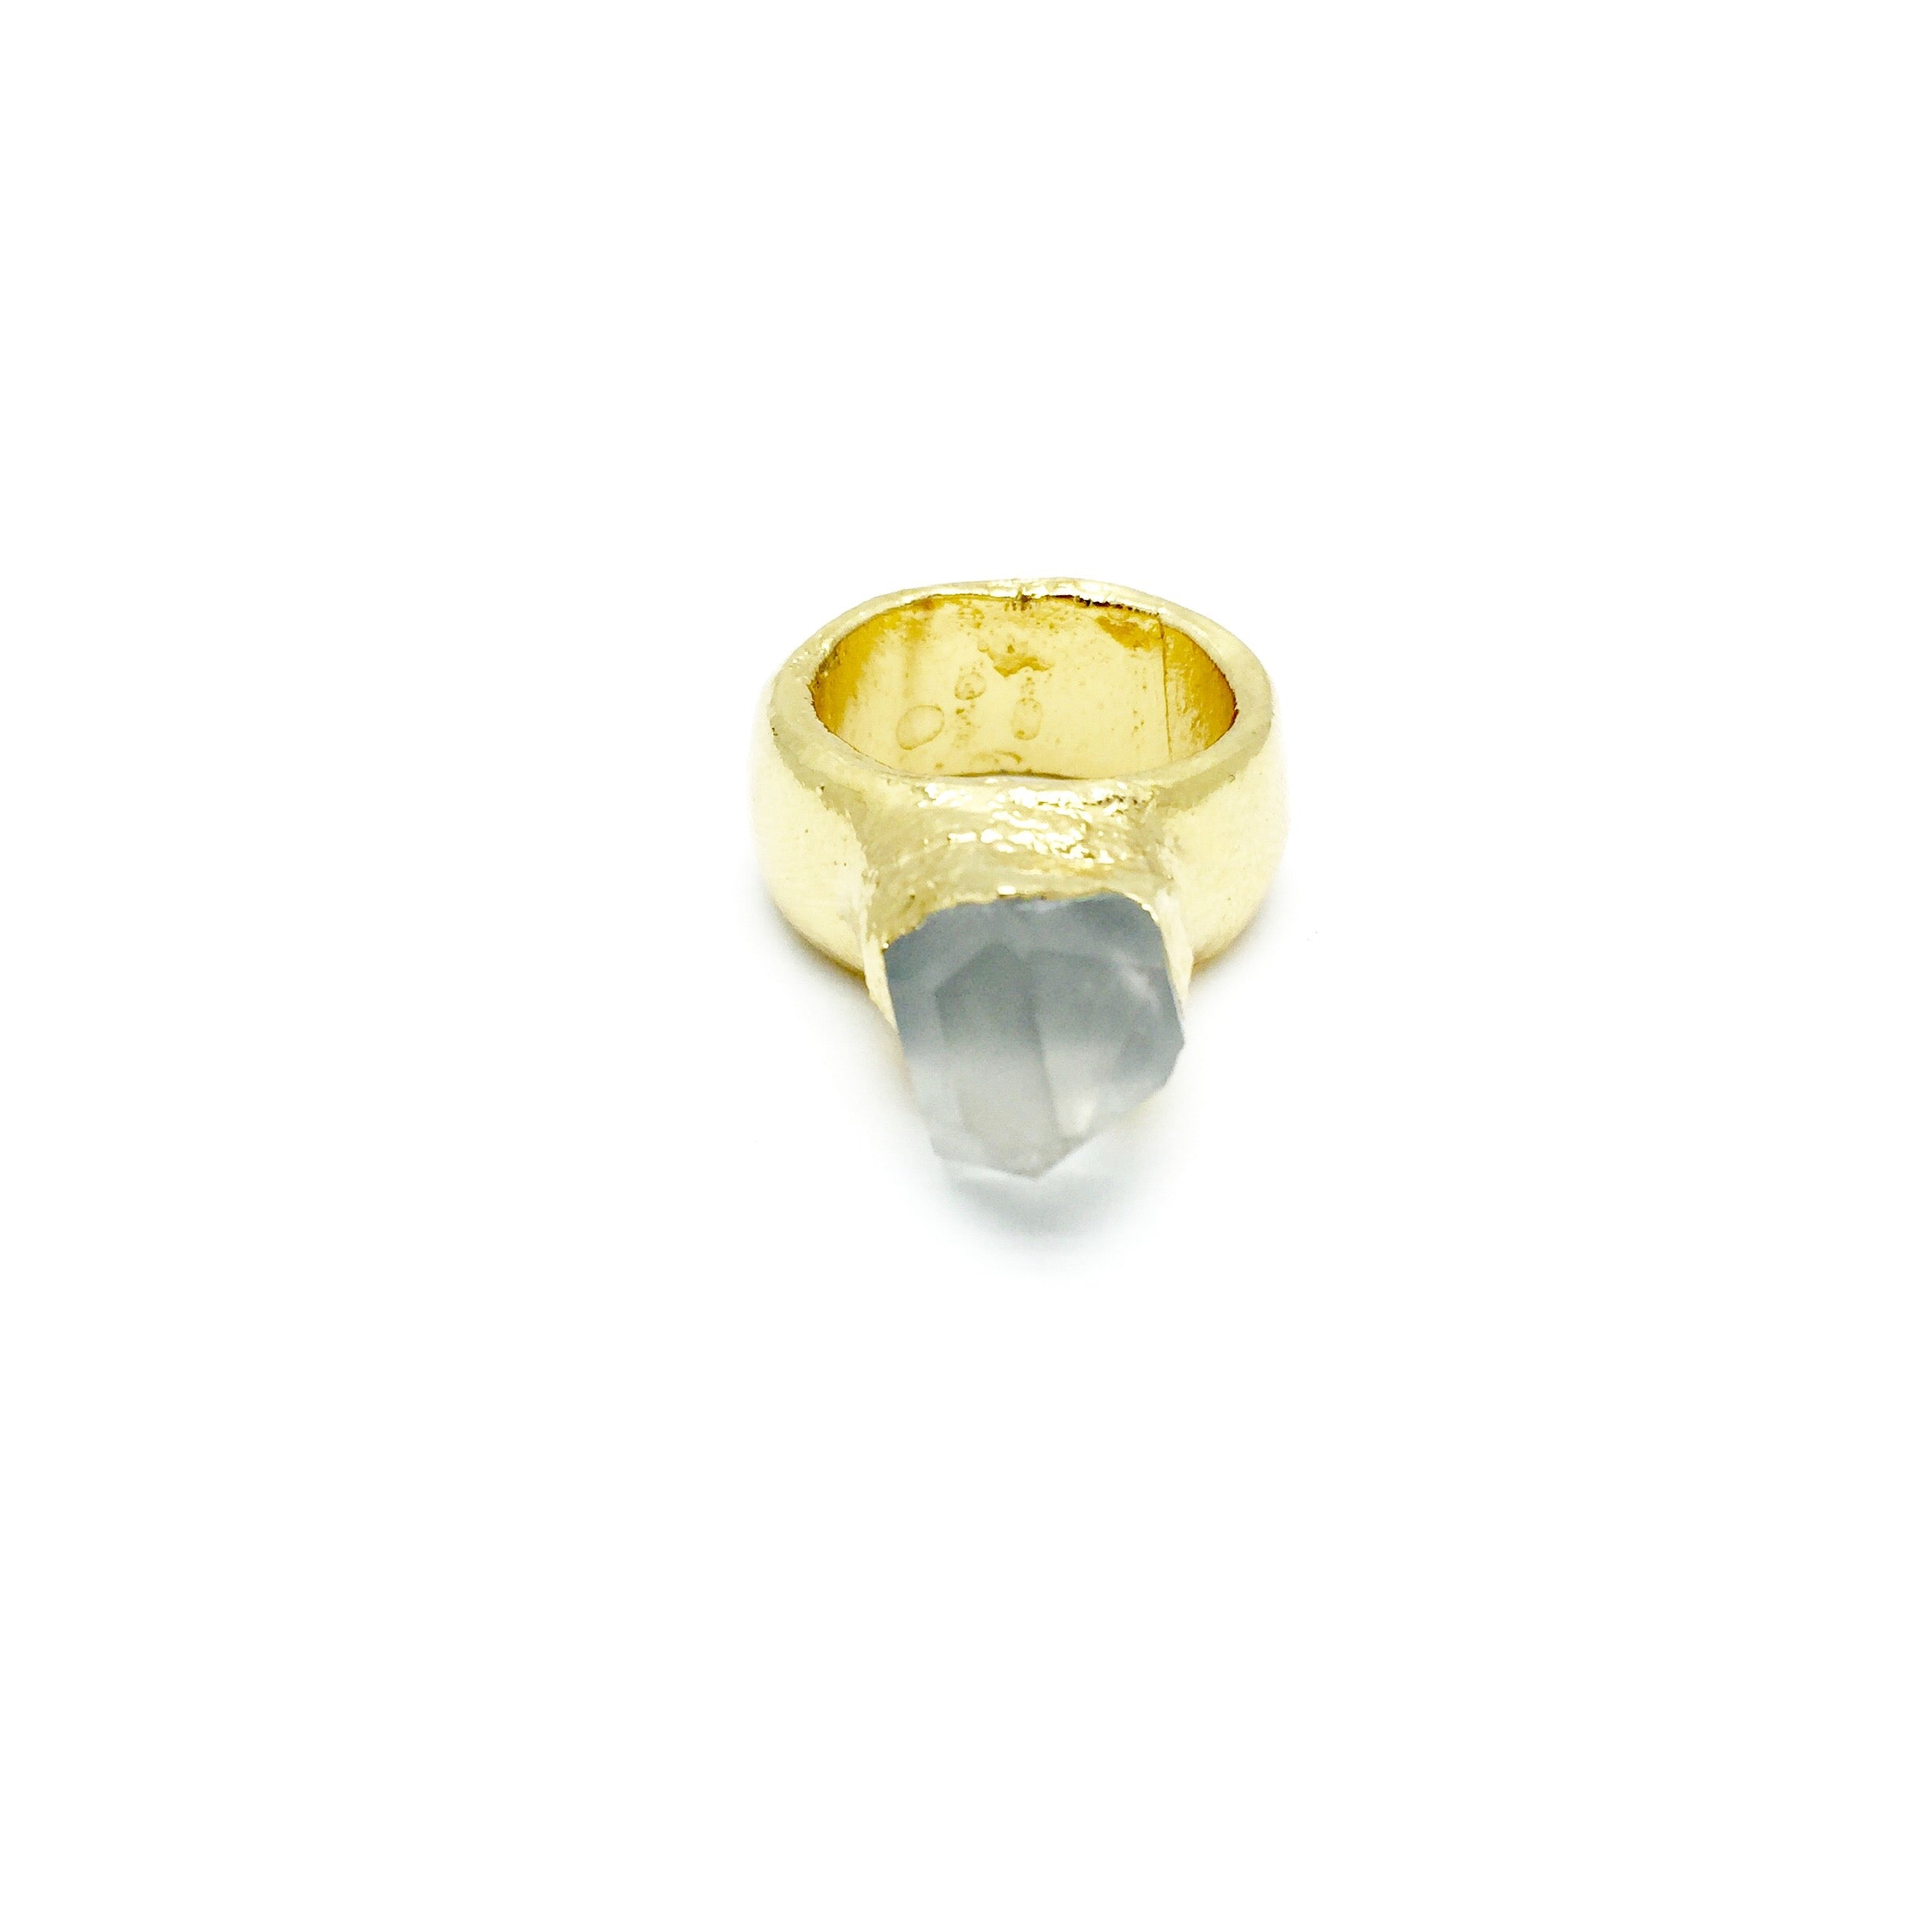 ASCENSION Raw Quartz Crystal Point Ring